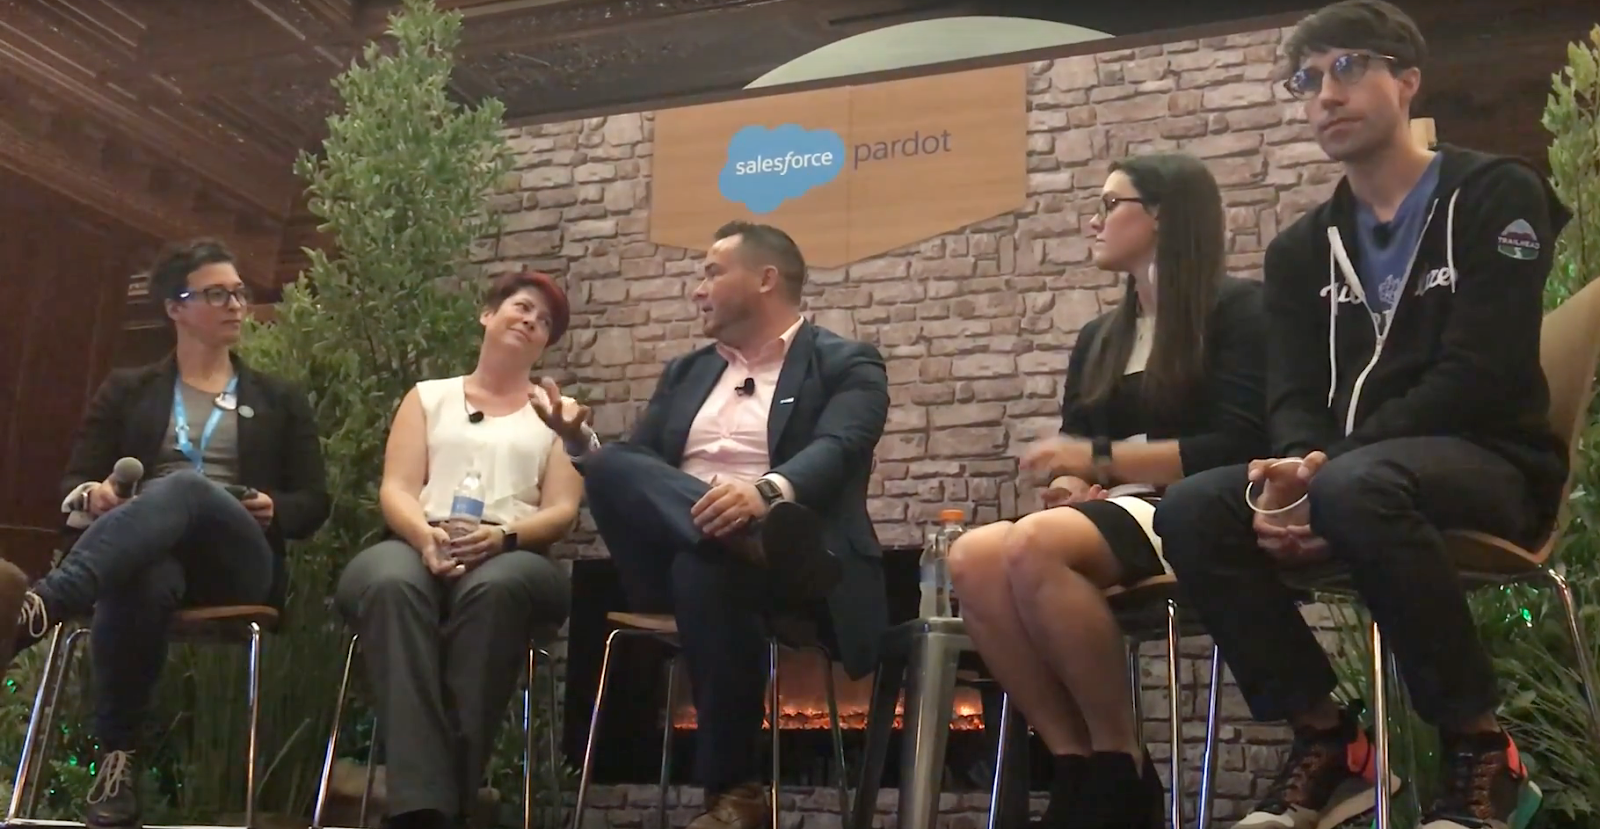 Tigh Loughhead Speaking at Dreamforce 2018 DF18 on the Pardot Trailblazer Top Marketing Expert Spotlight